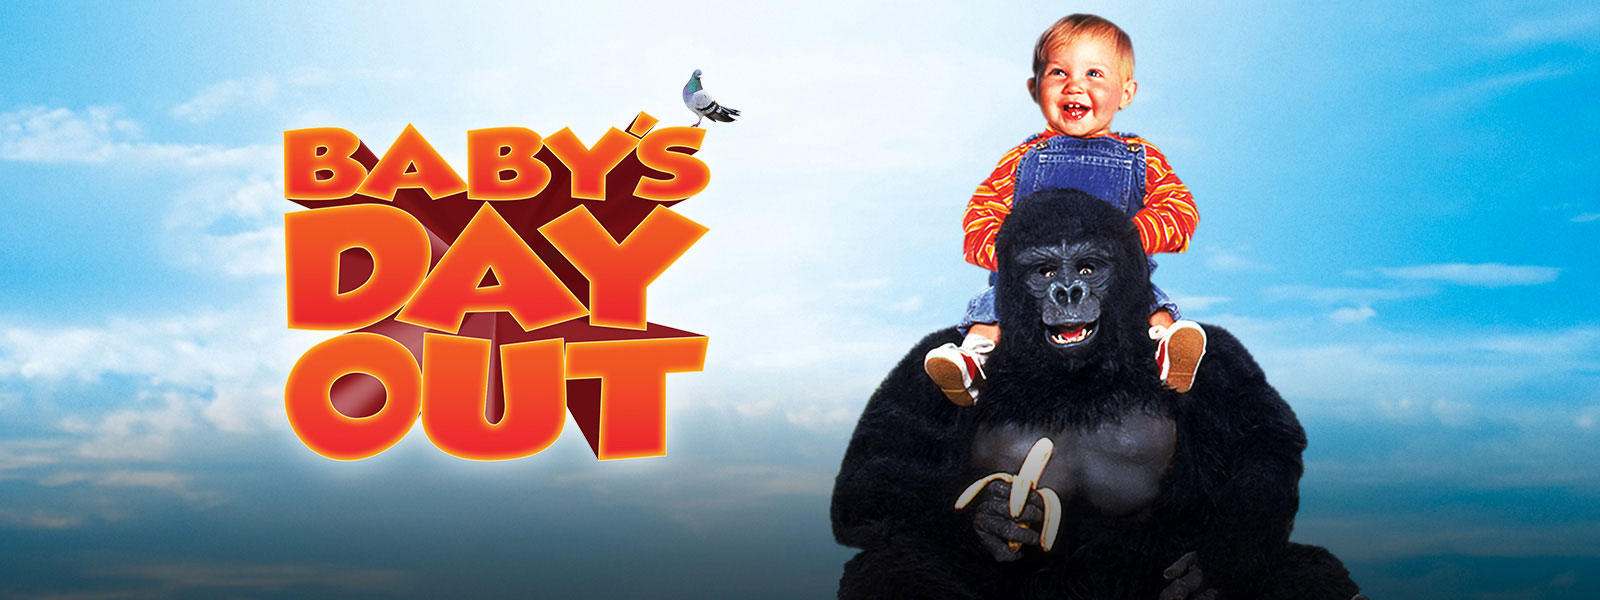 BABYS DAY OUT TAMIL DUBBED HD